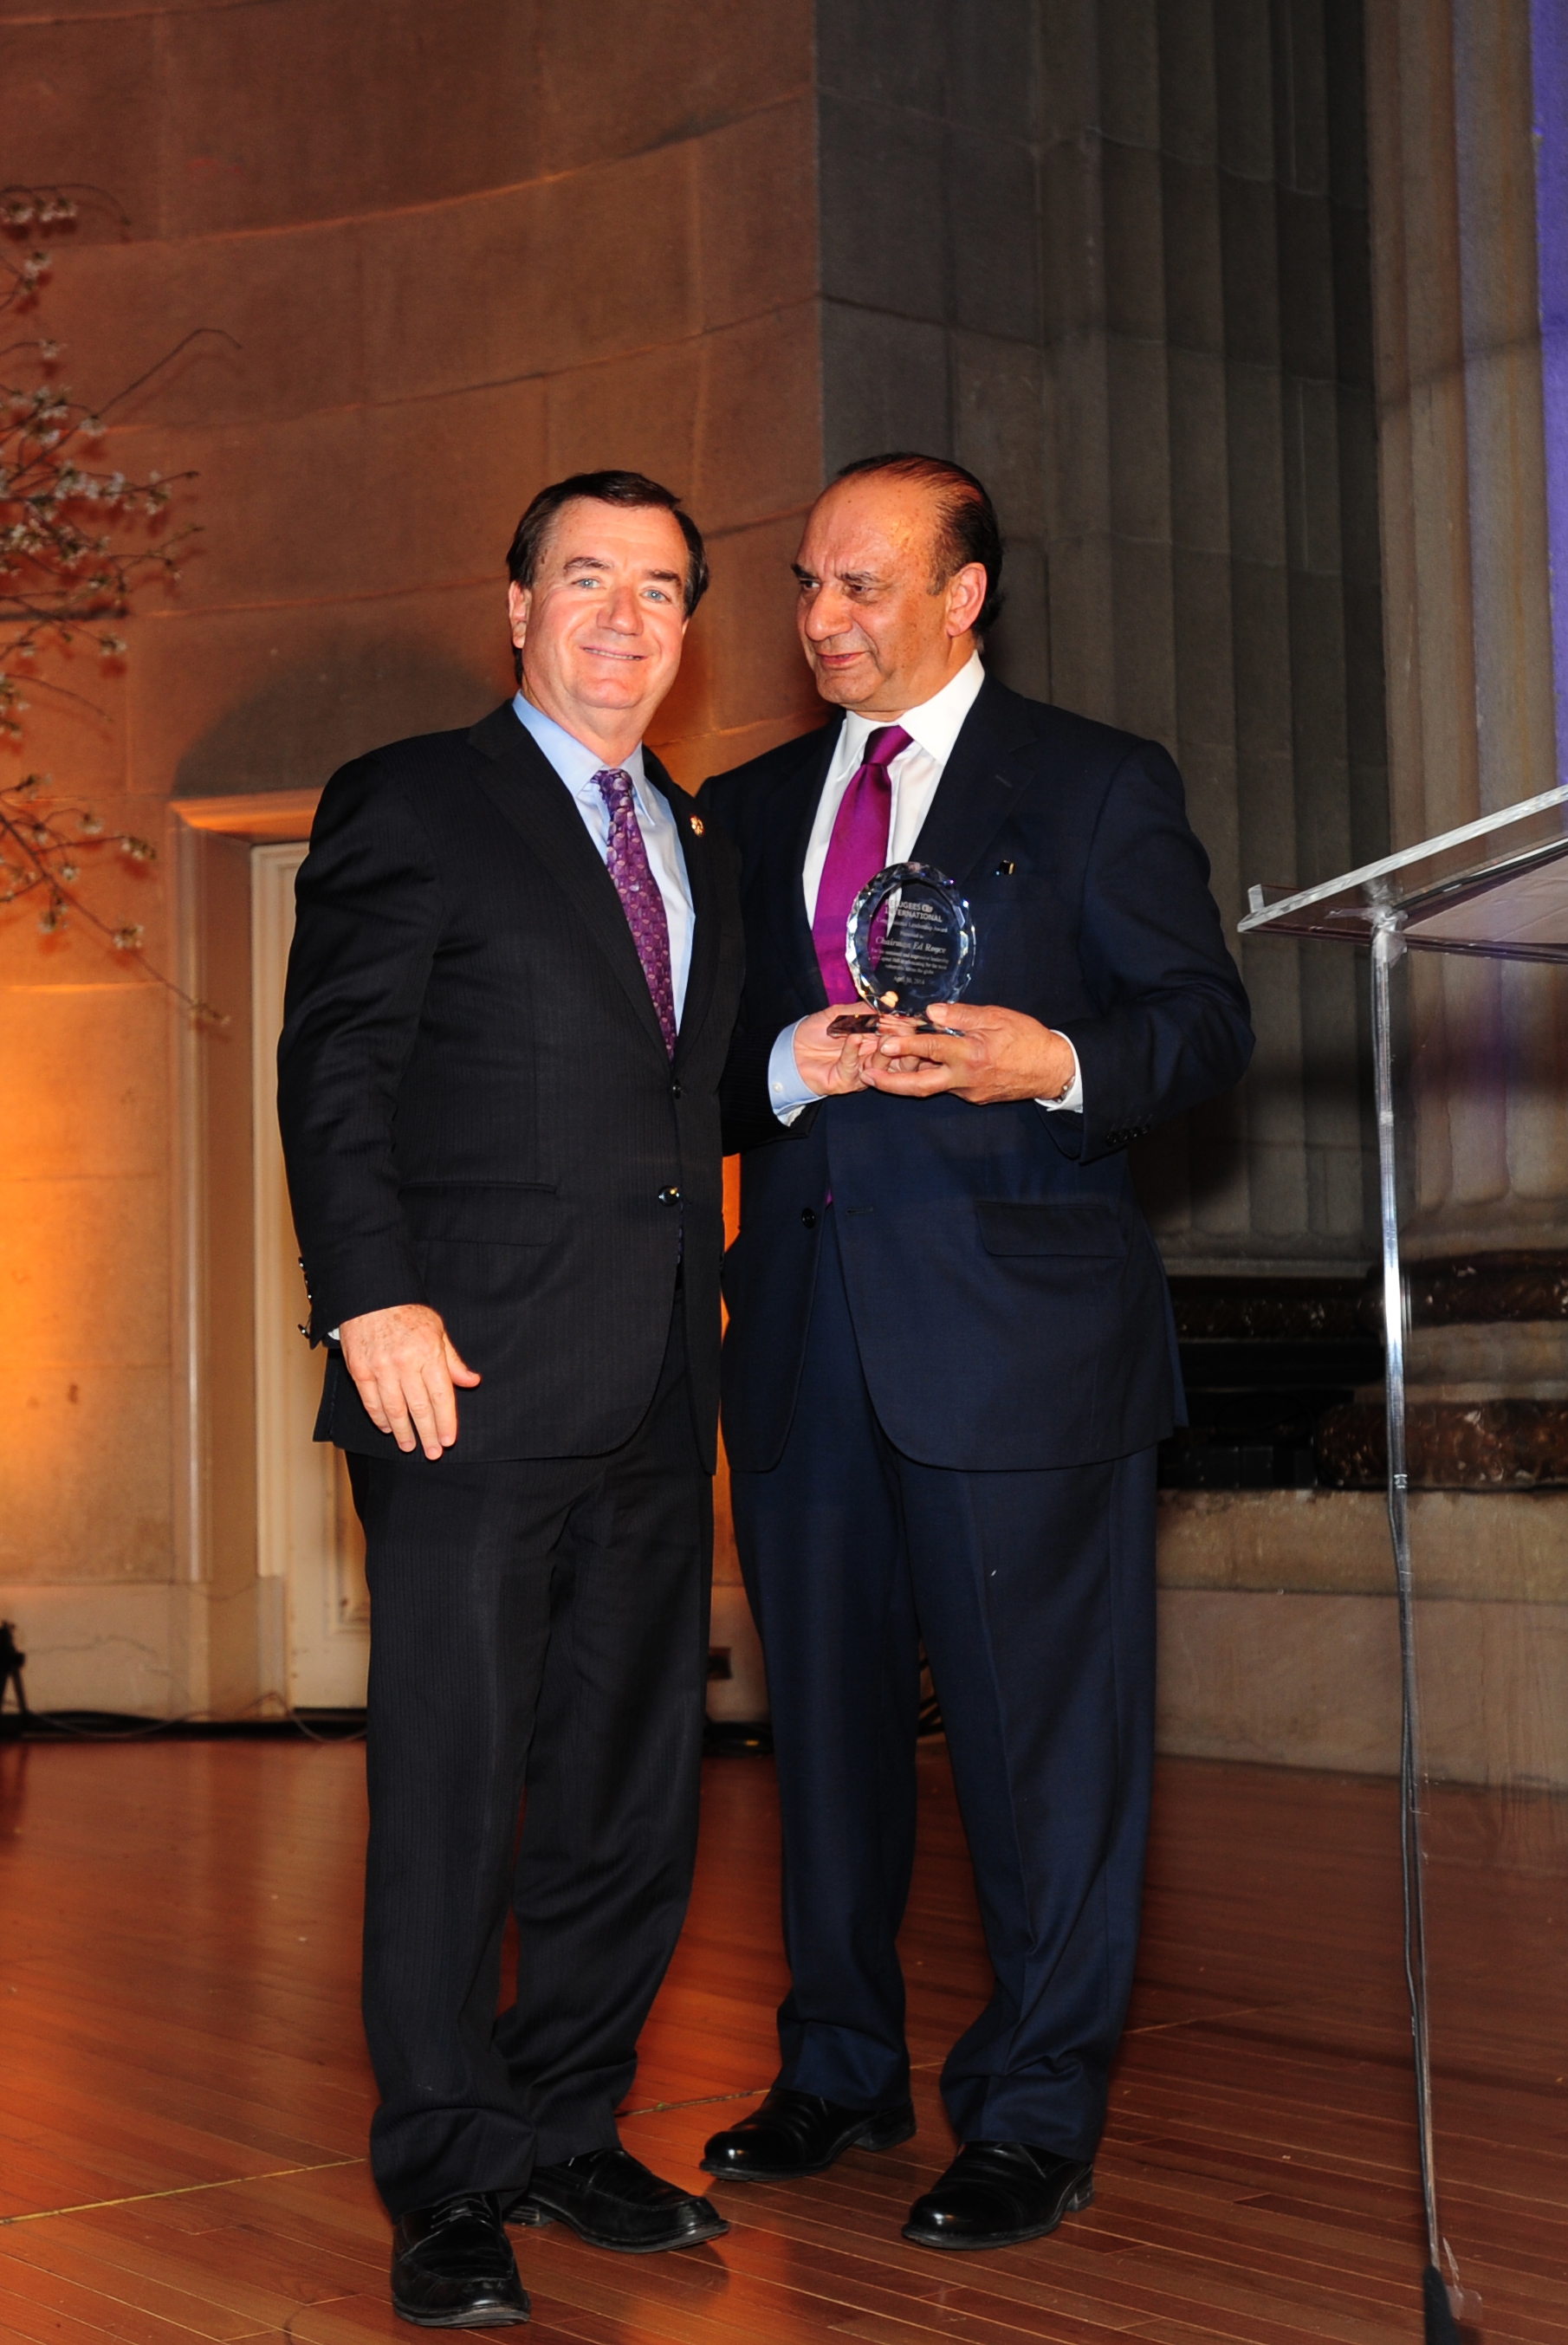 Rep. Ed Royce receives Congressional Leadership Award from RI Emeritus Board Member Farooq Kathwari